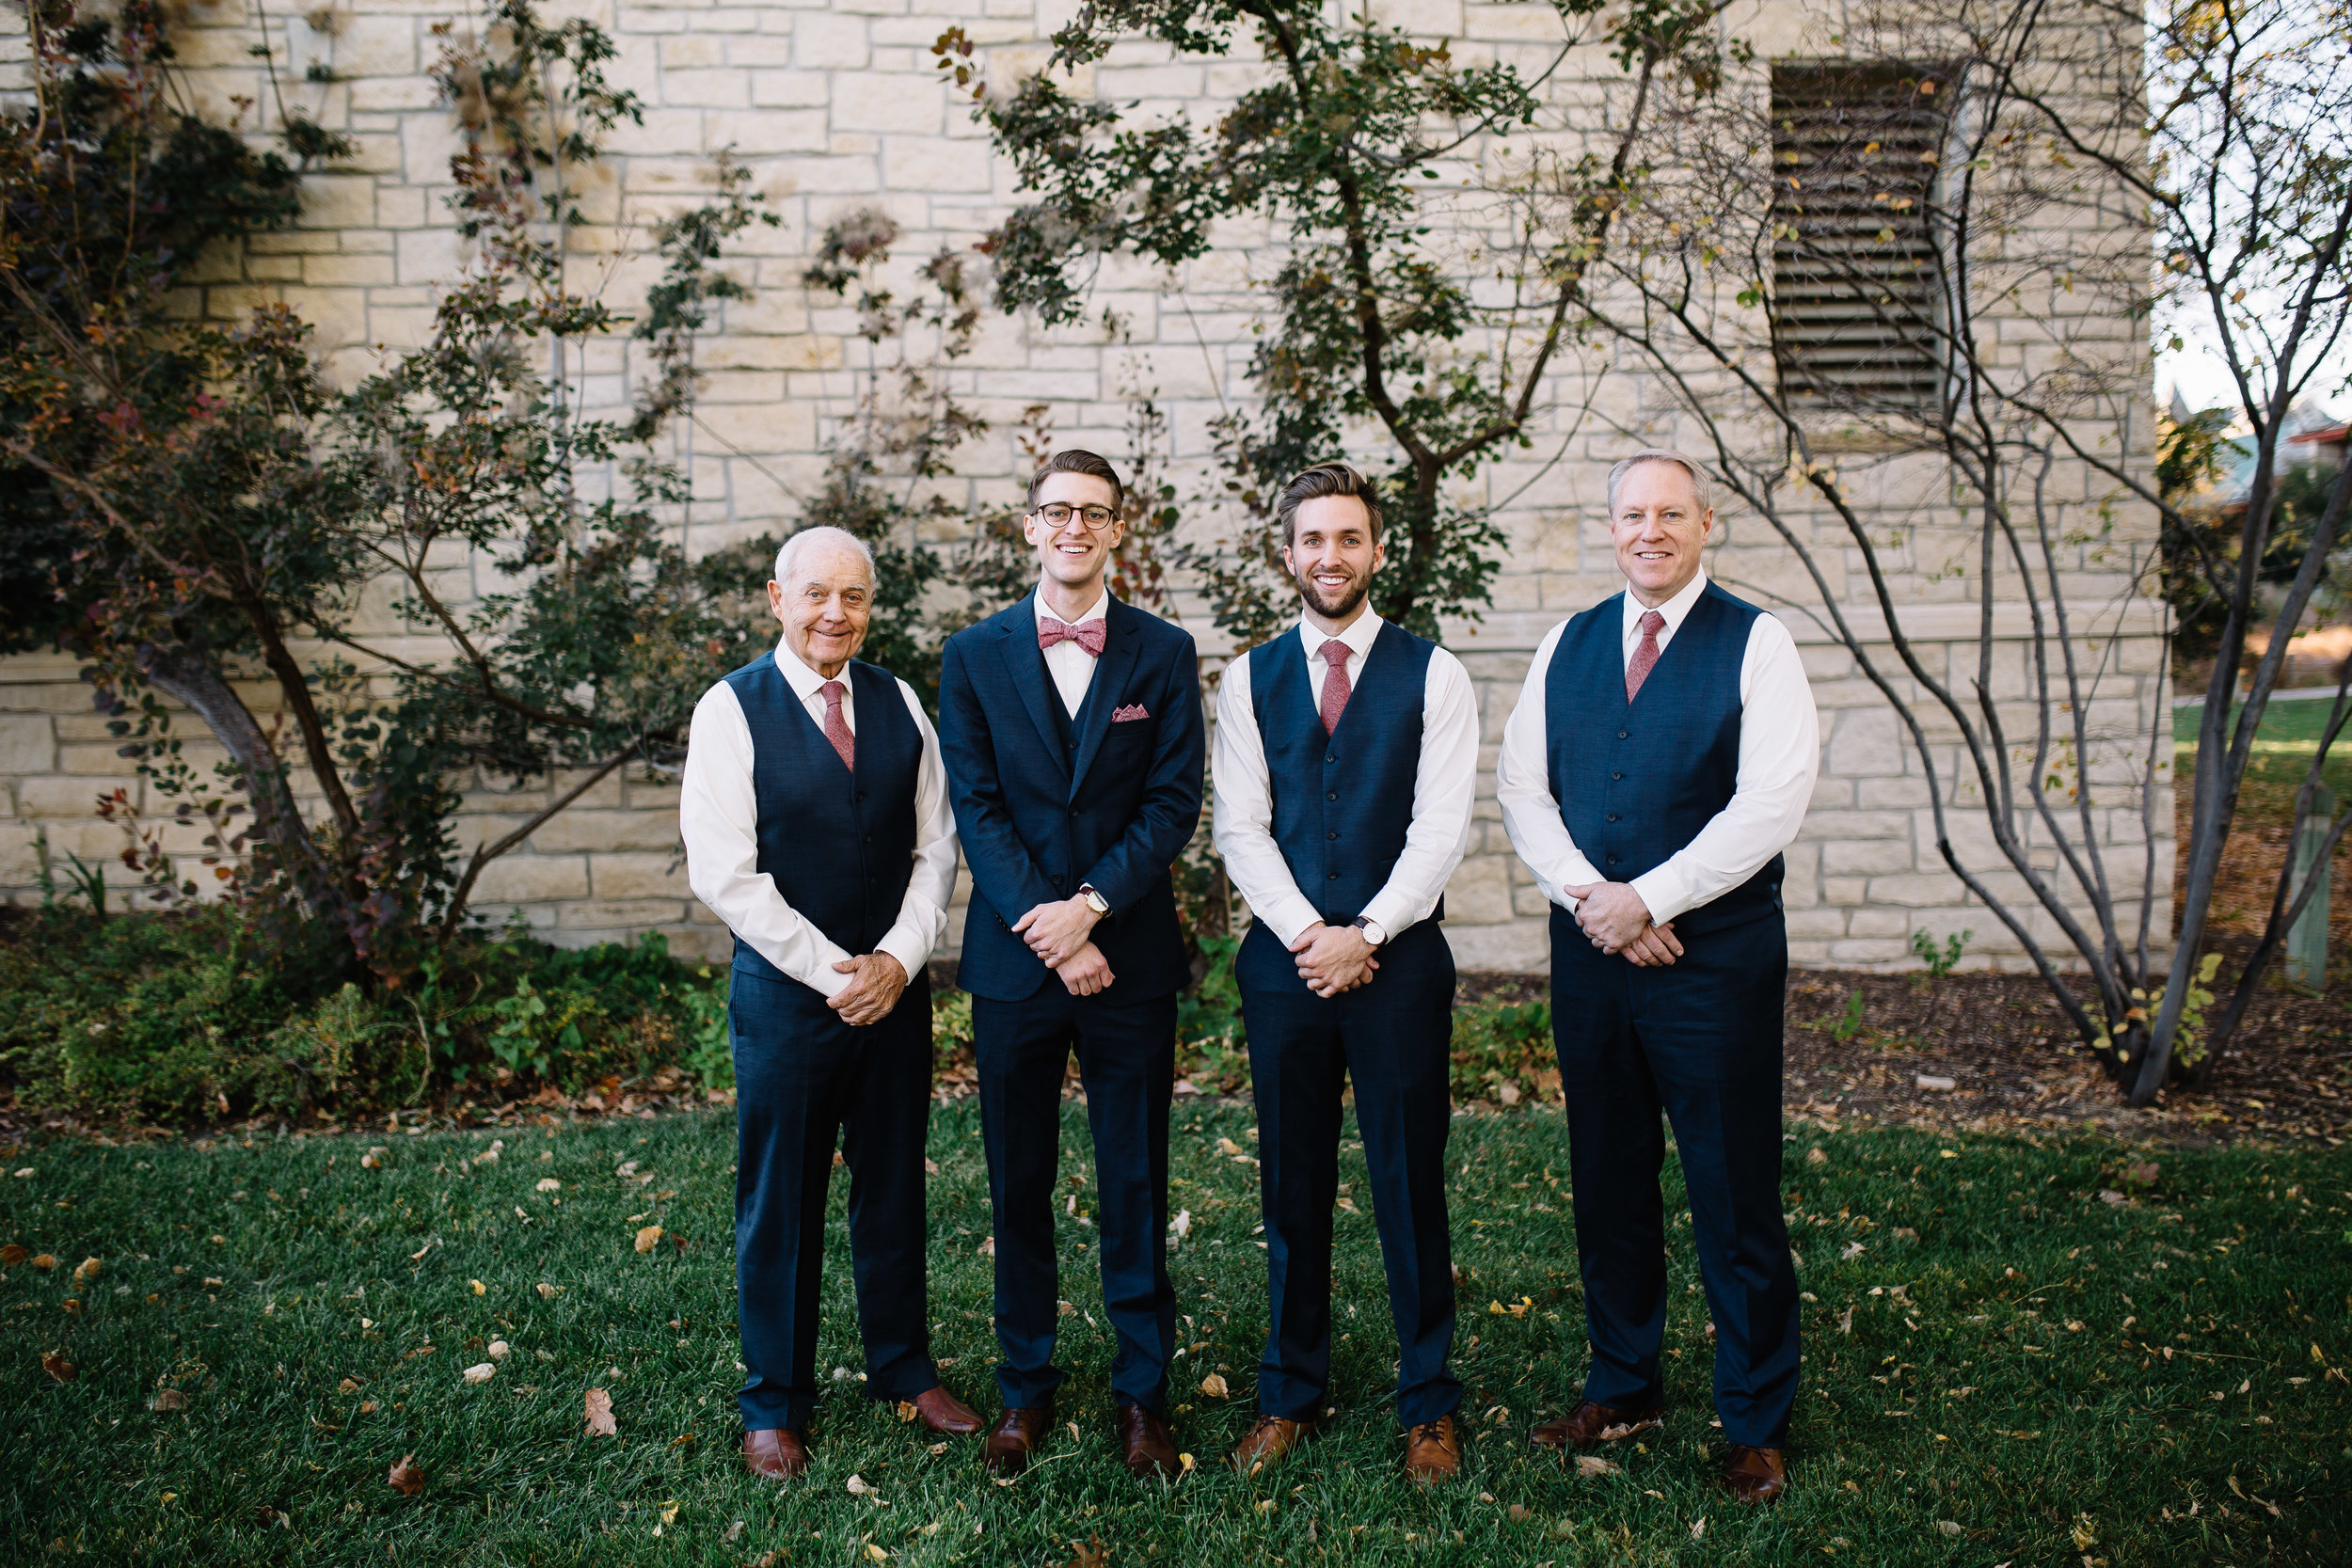 When your groom picks his groomsmen to be his big brother, father and grandpa - your heart kind of melts a bit.